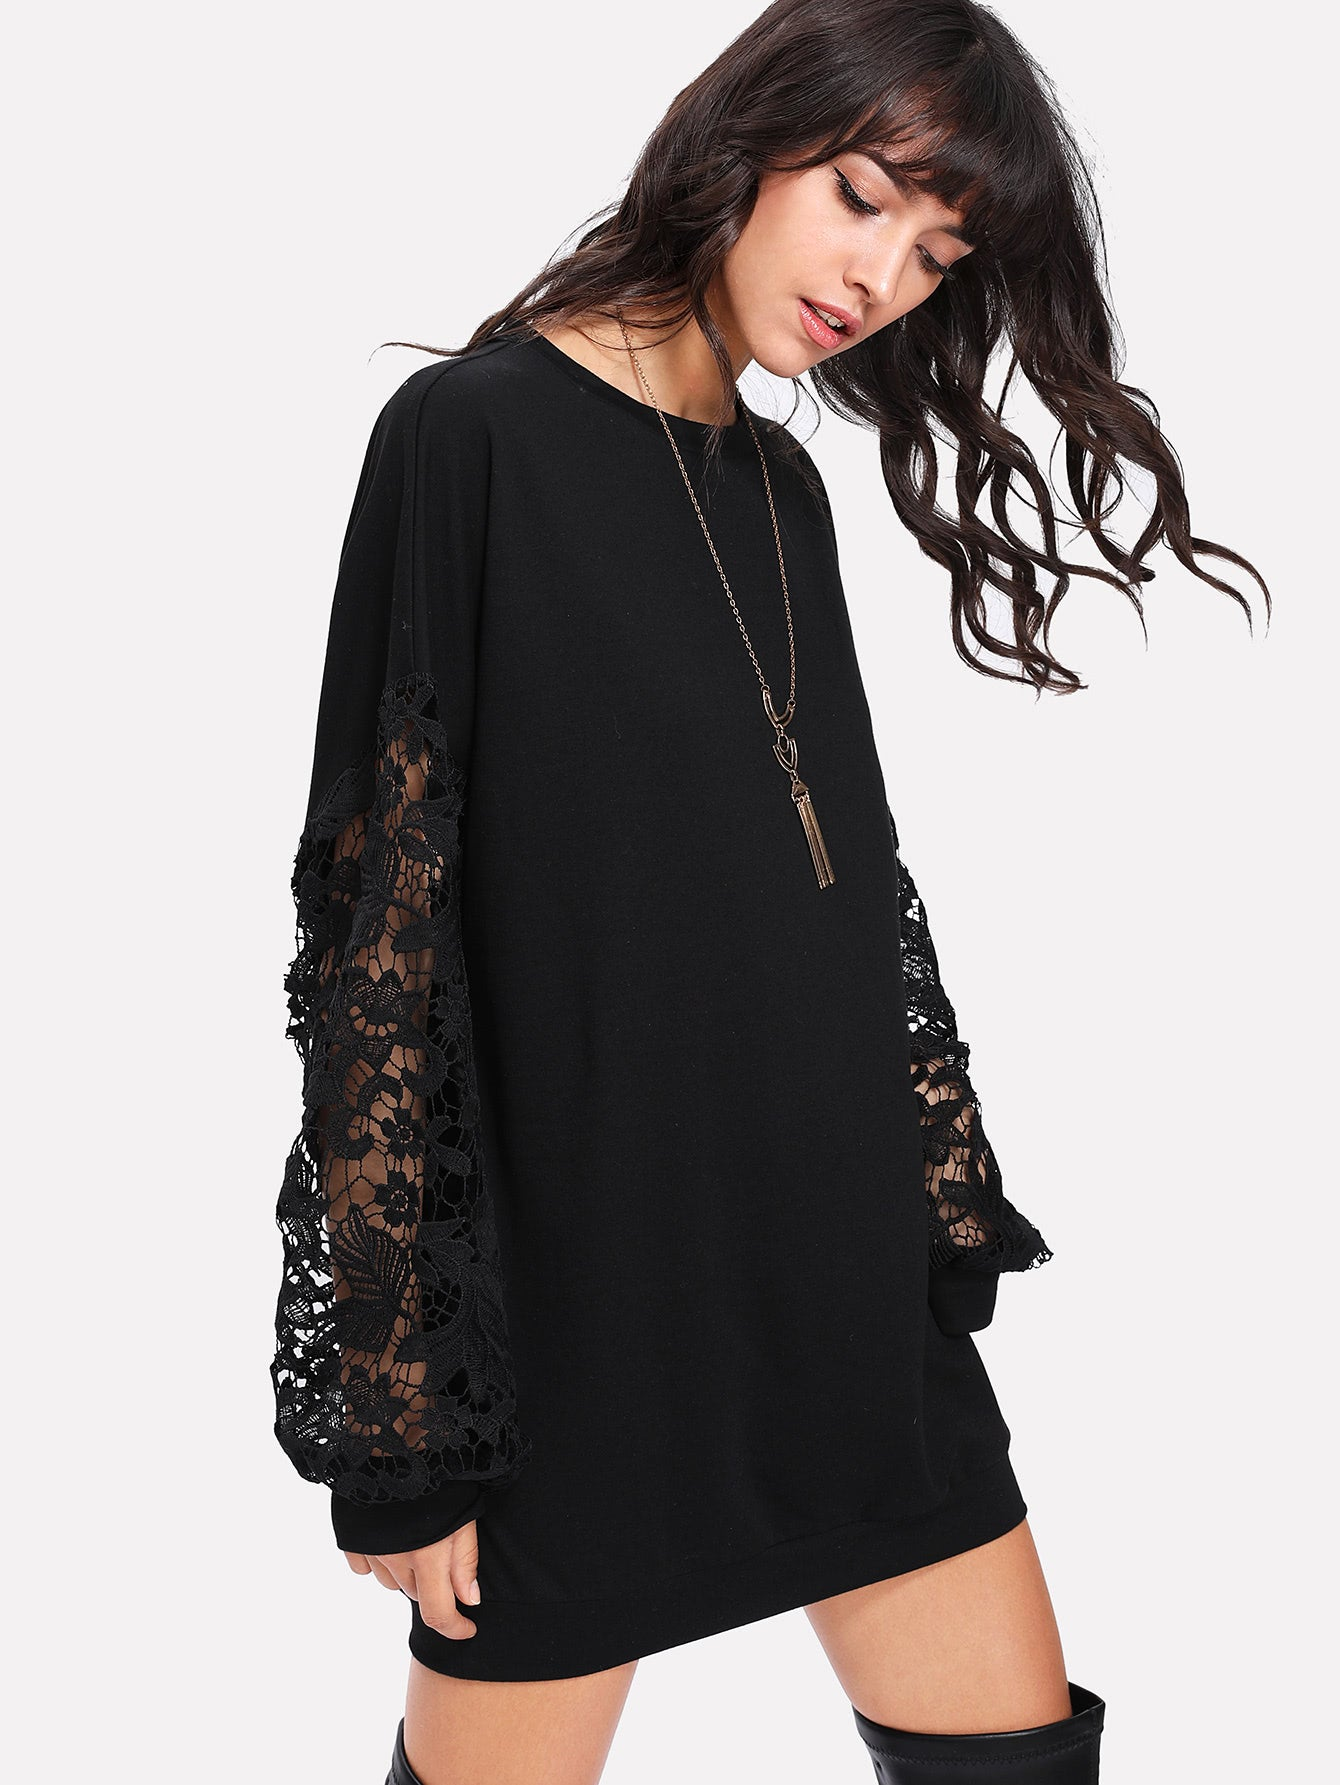 Floral Lace Sleeve Long line Sweatshirt